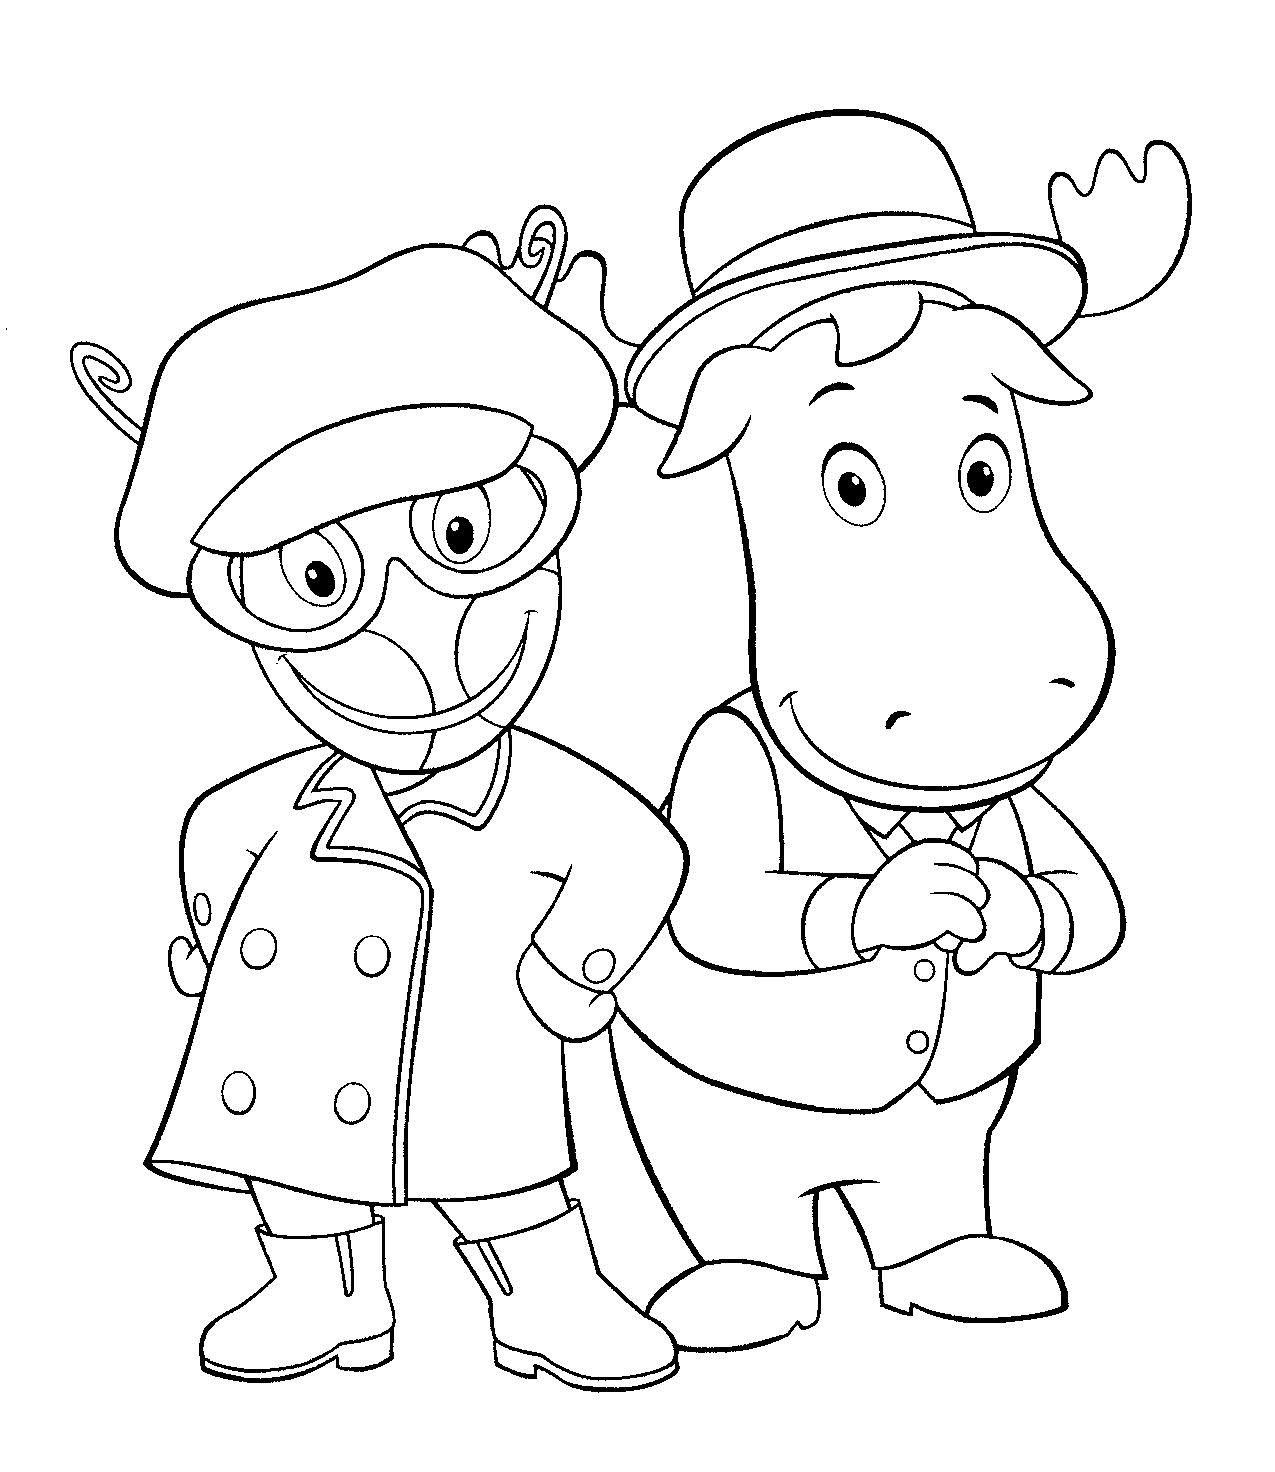 Backyardigans Minecraft Coloring Pages Coloring Pages Free Coloring Pages